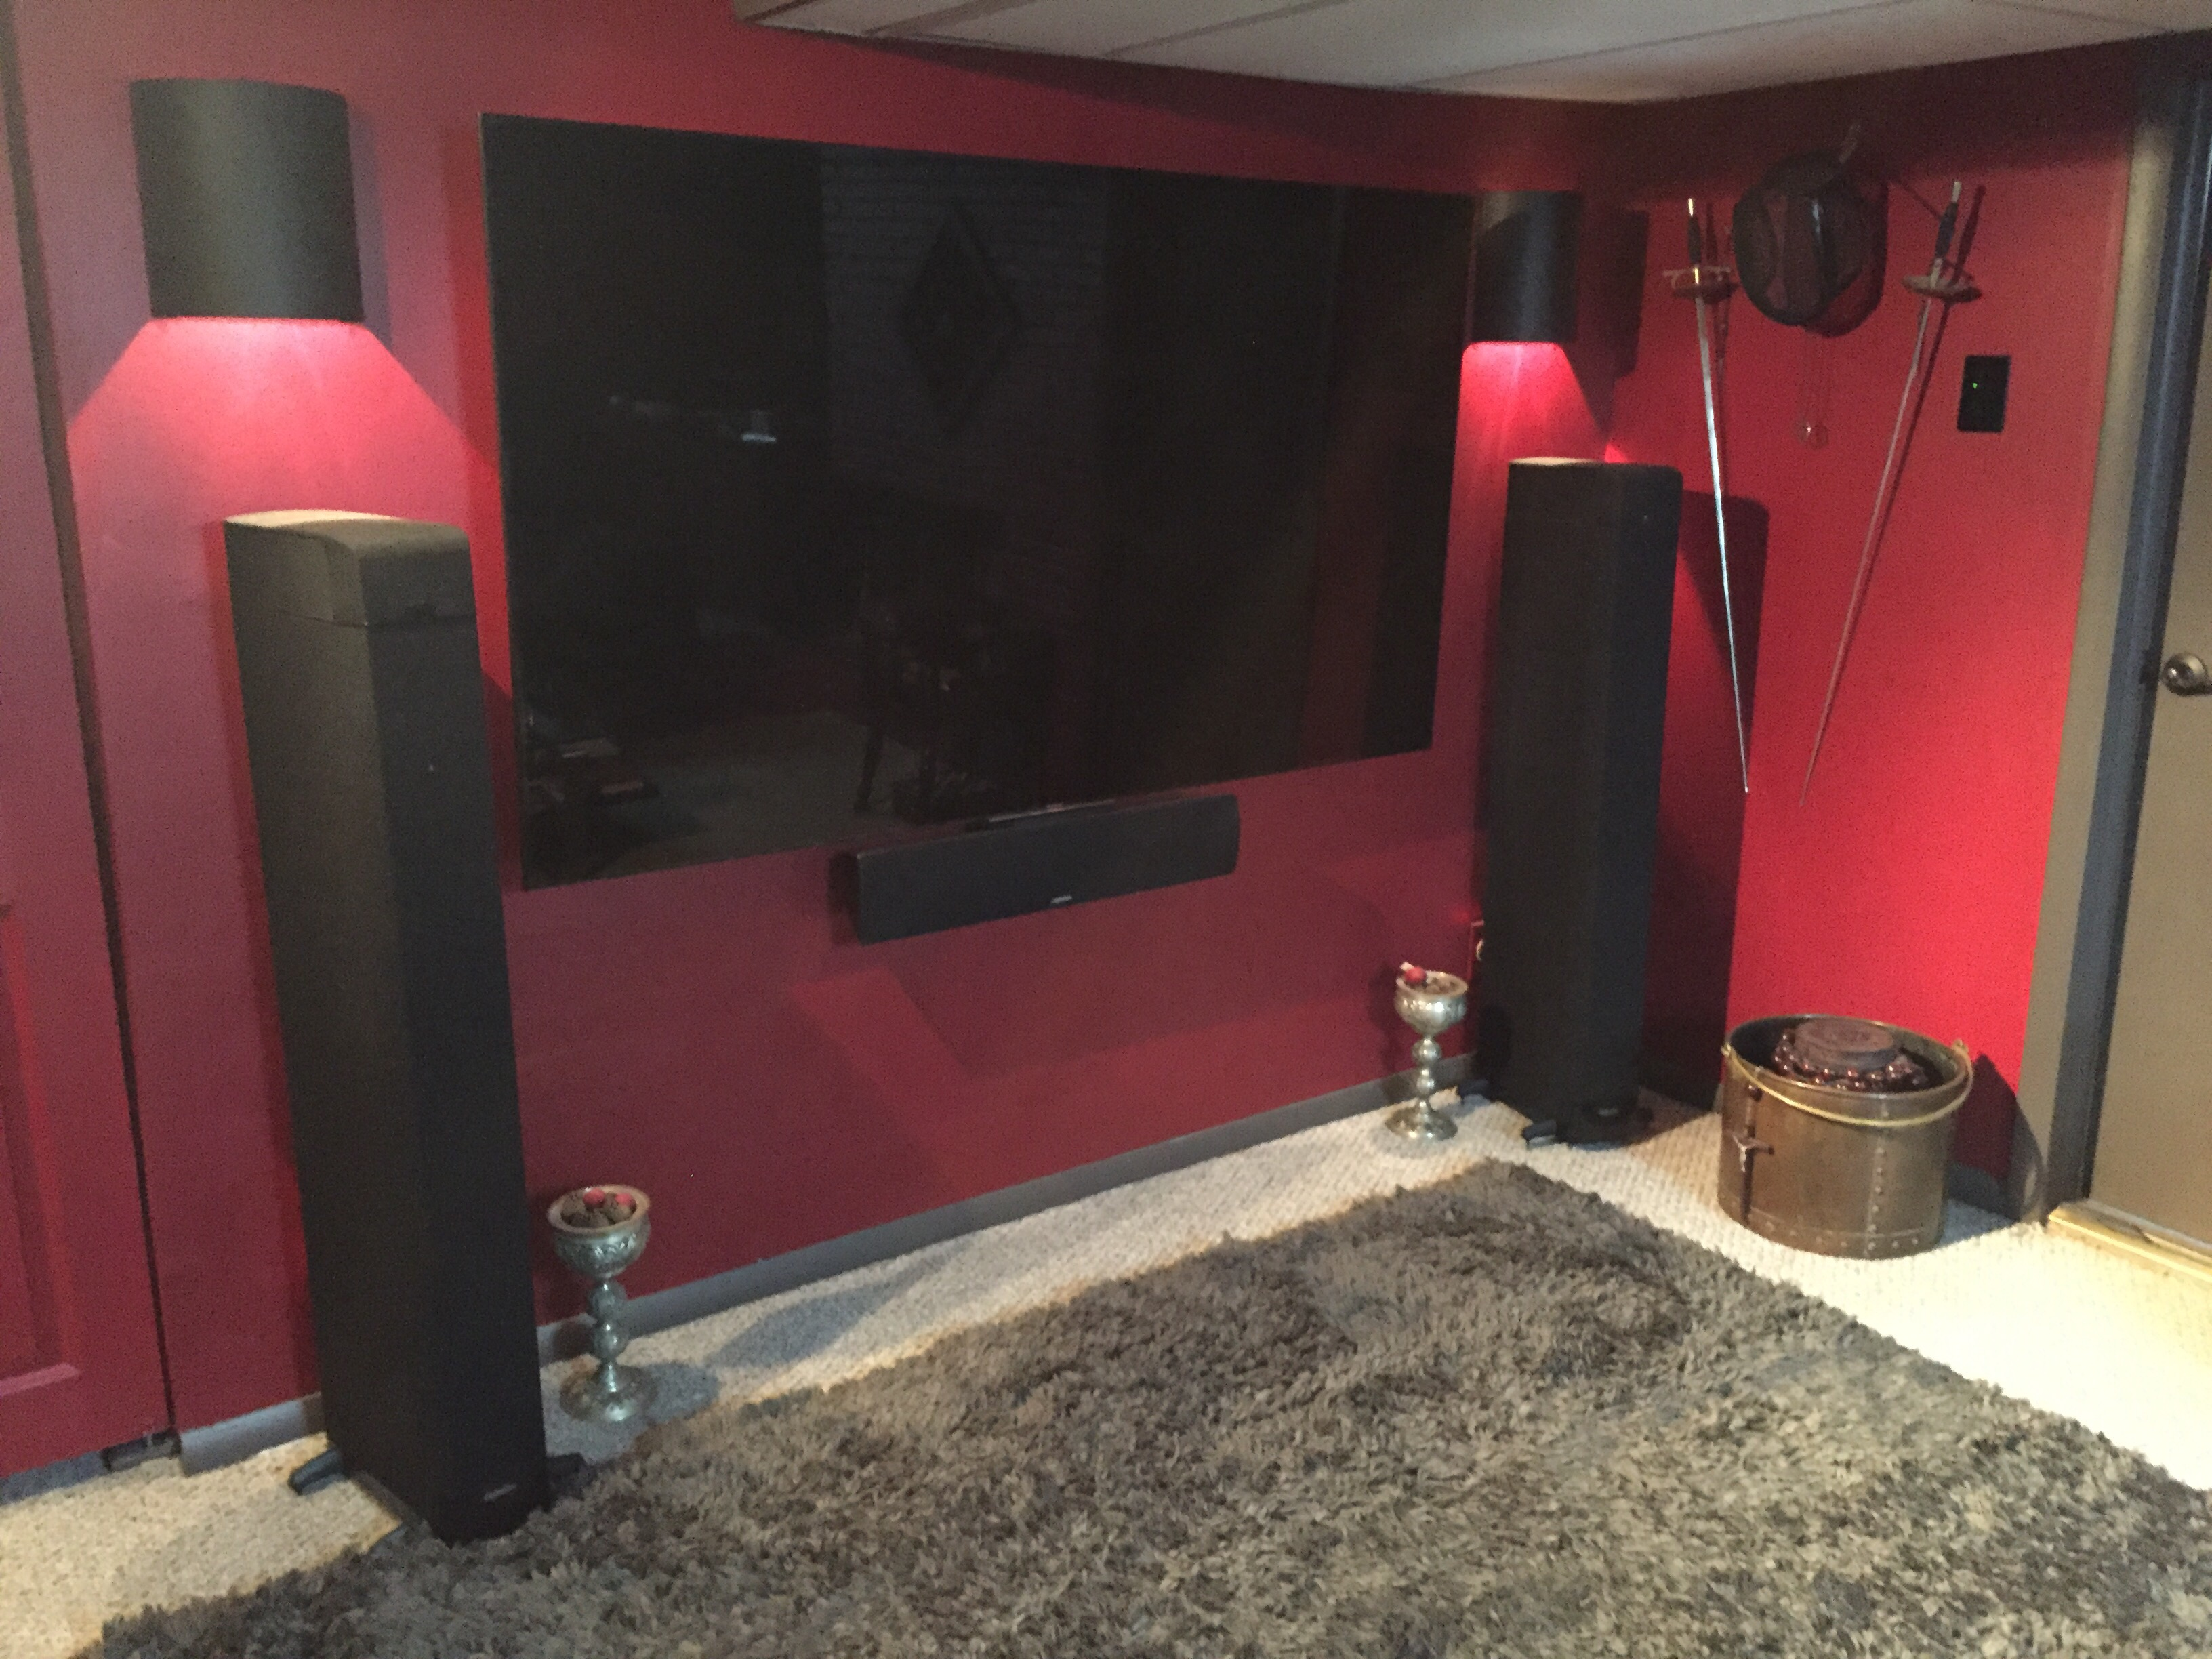 Castle Avi In Bloomfield Hills Michigan Retrofits Older Homes With House Wiring Art Home Theater Updates